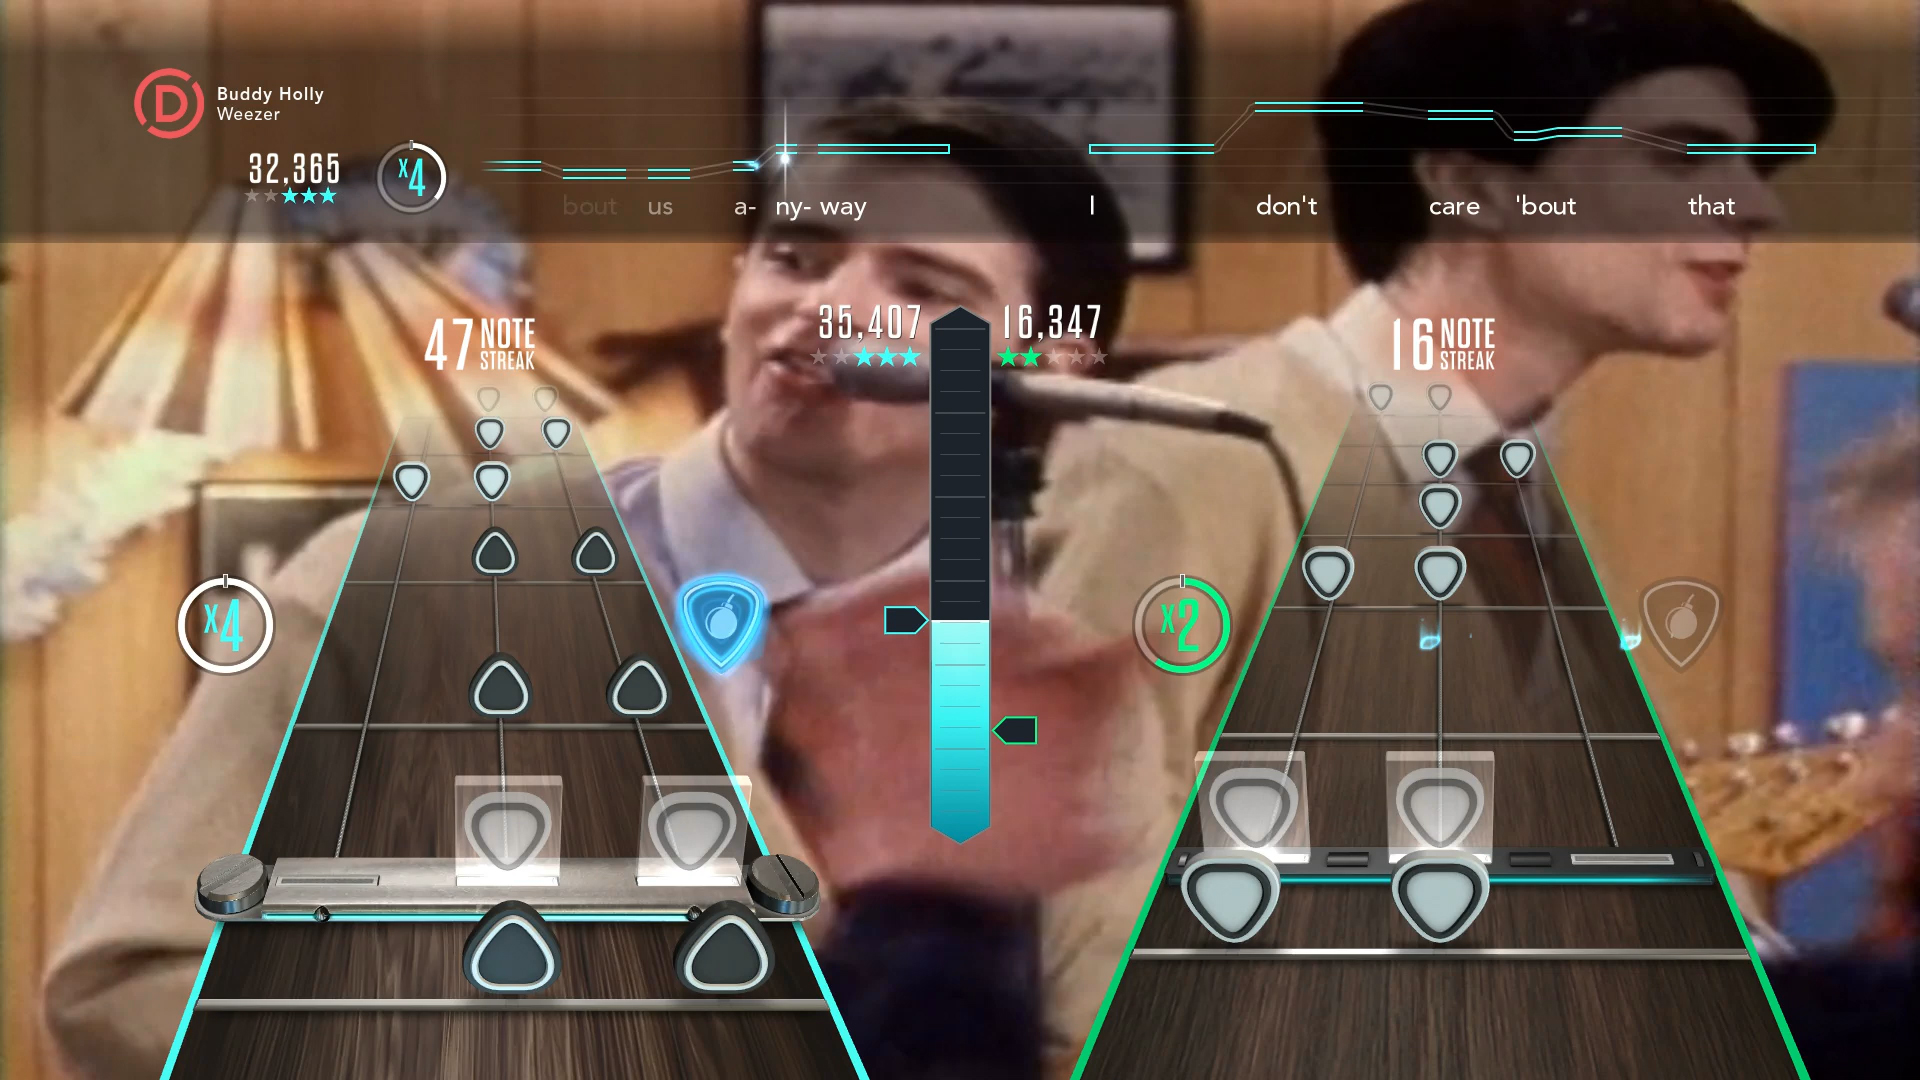 Guitar Hero Live screenshot PS4 GH TV Buddy Holly Multiplayer